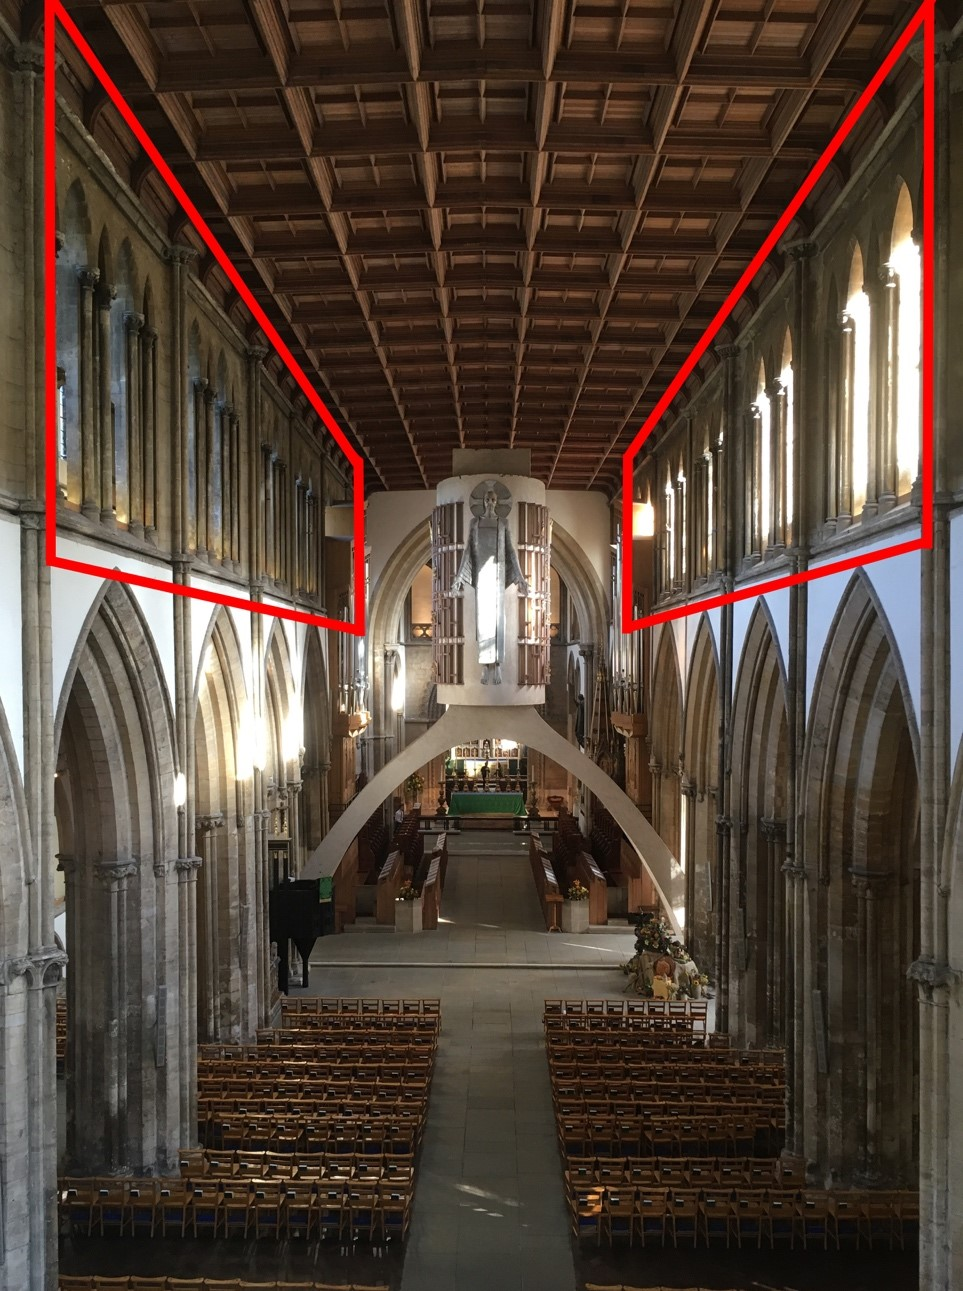 The location of the clerestory shafts